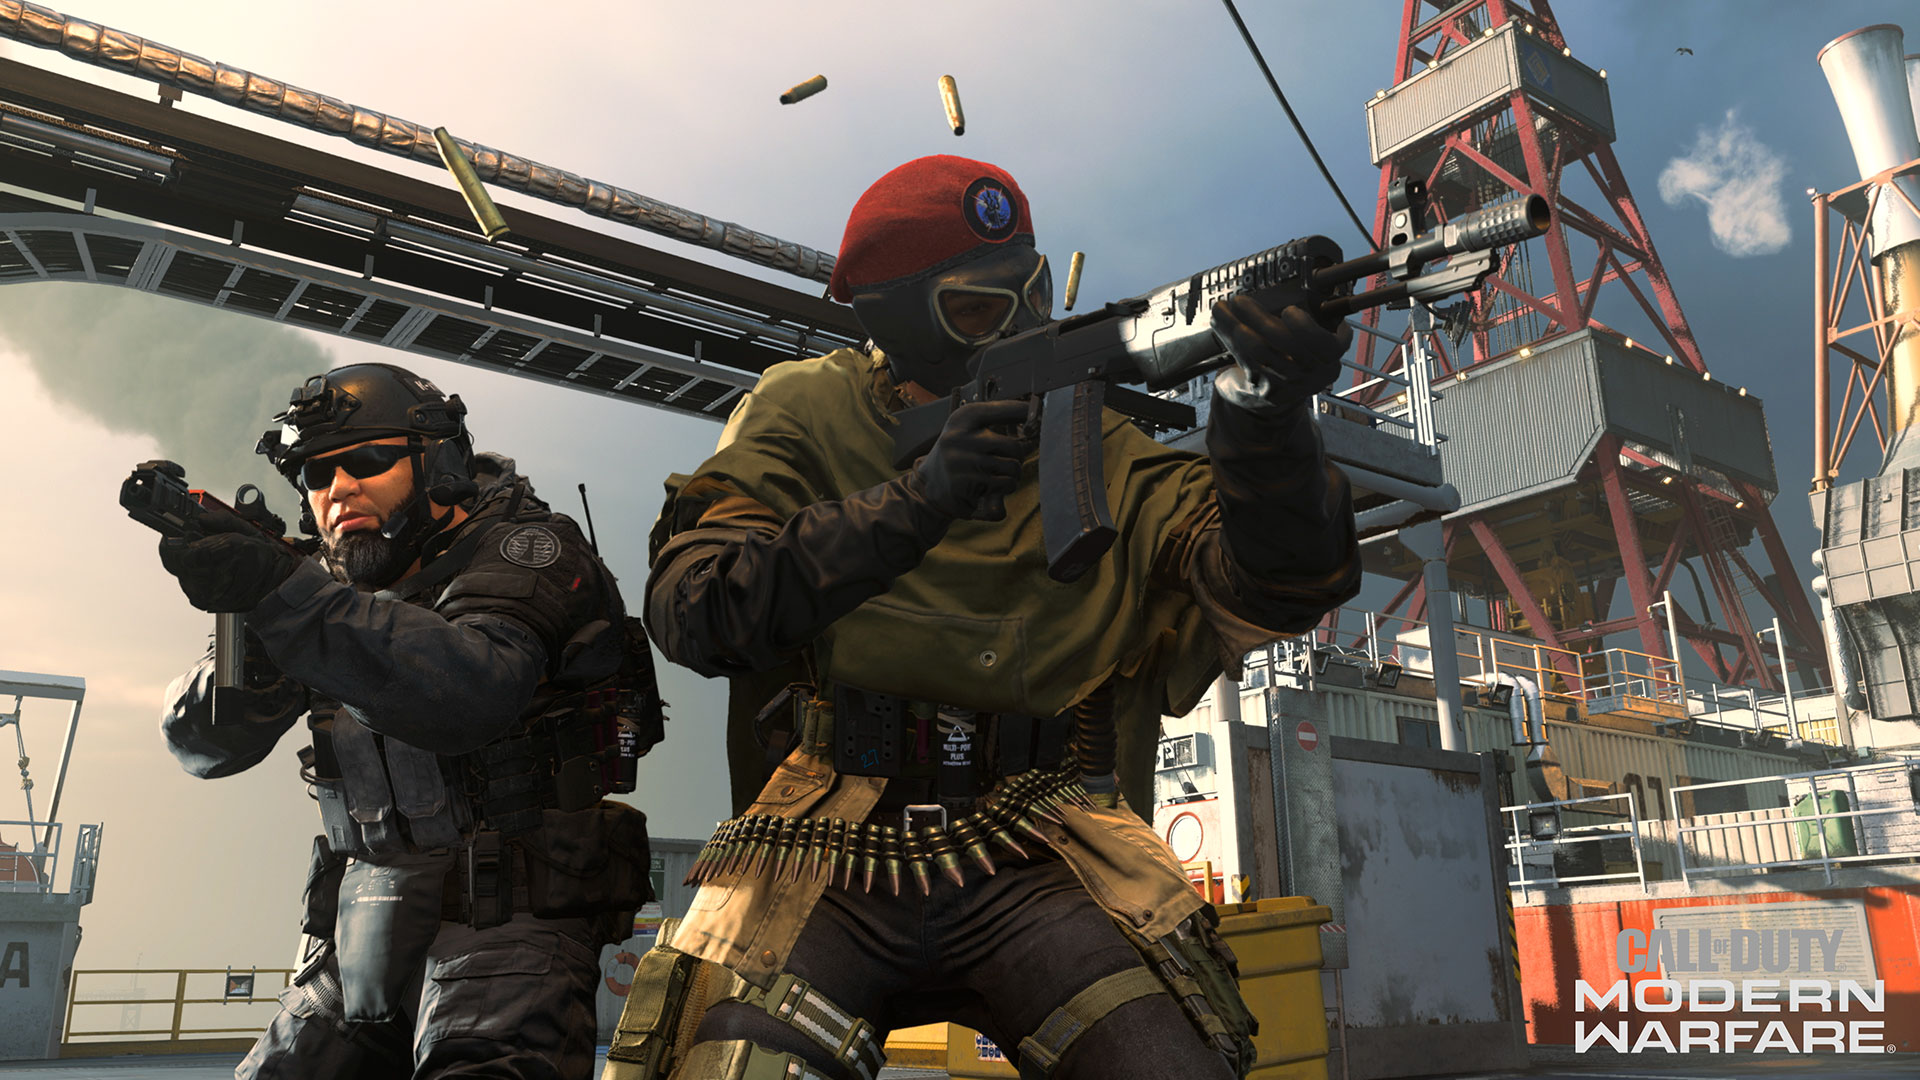 Infinity Ward have added two new guns, the AN-94 AR and ISO SMG, in the new Season 5 update.